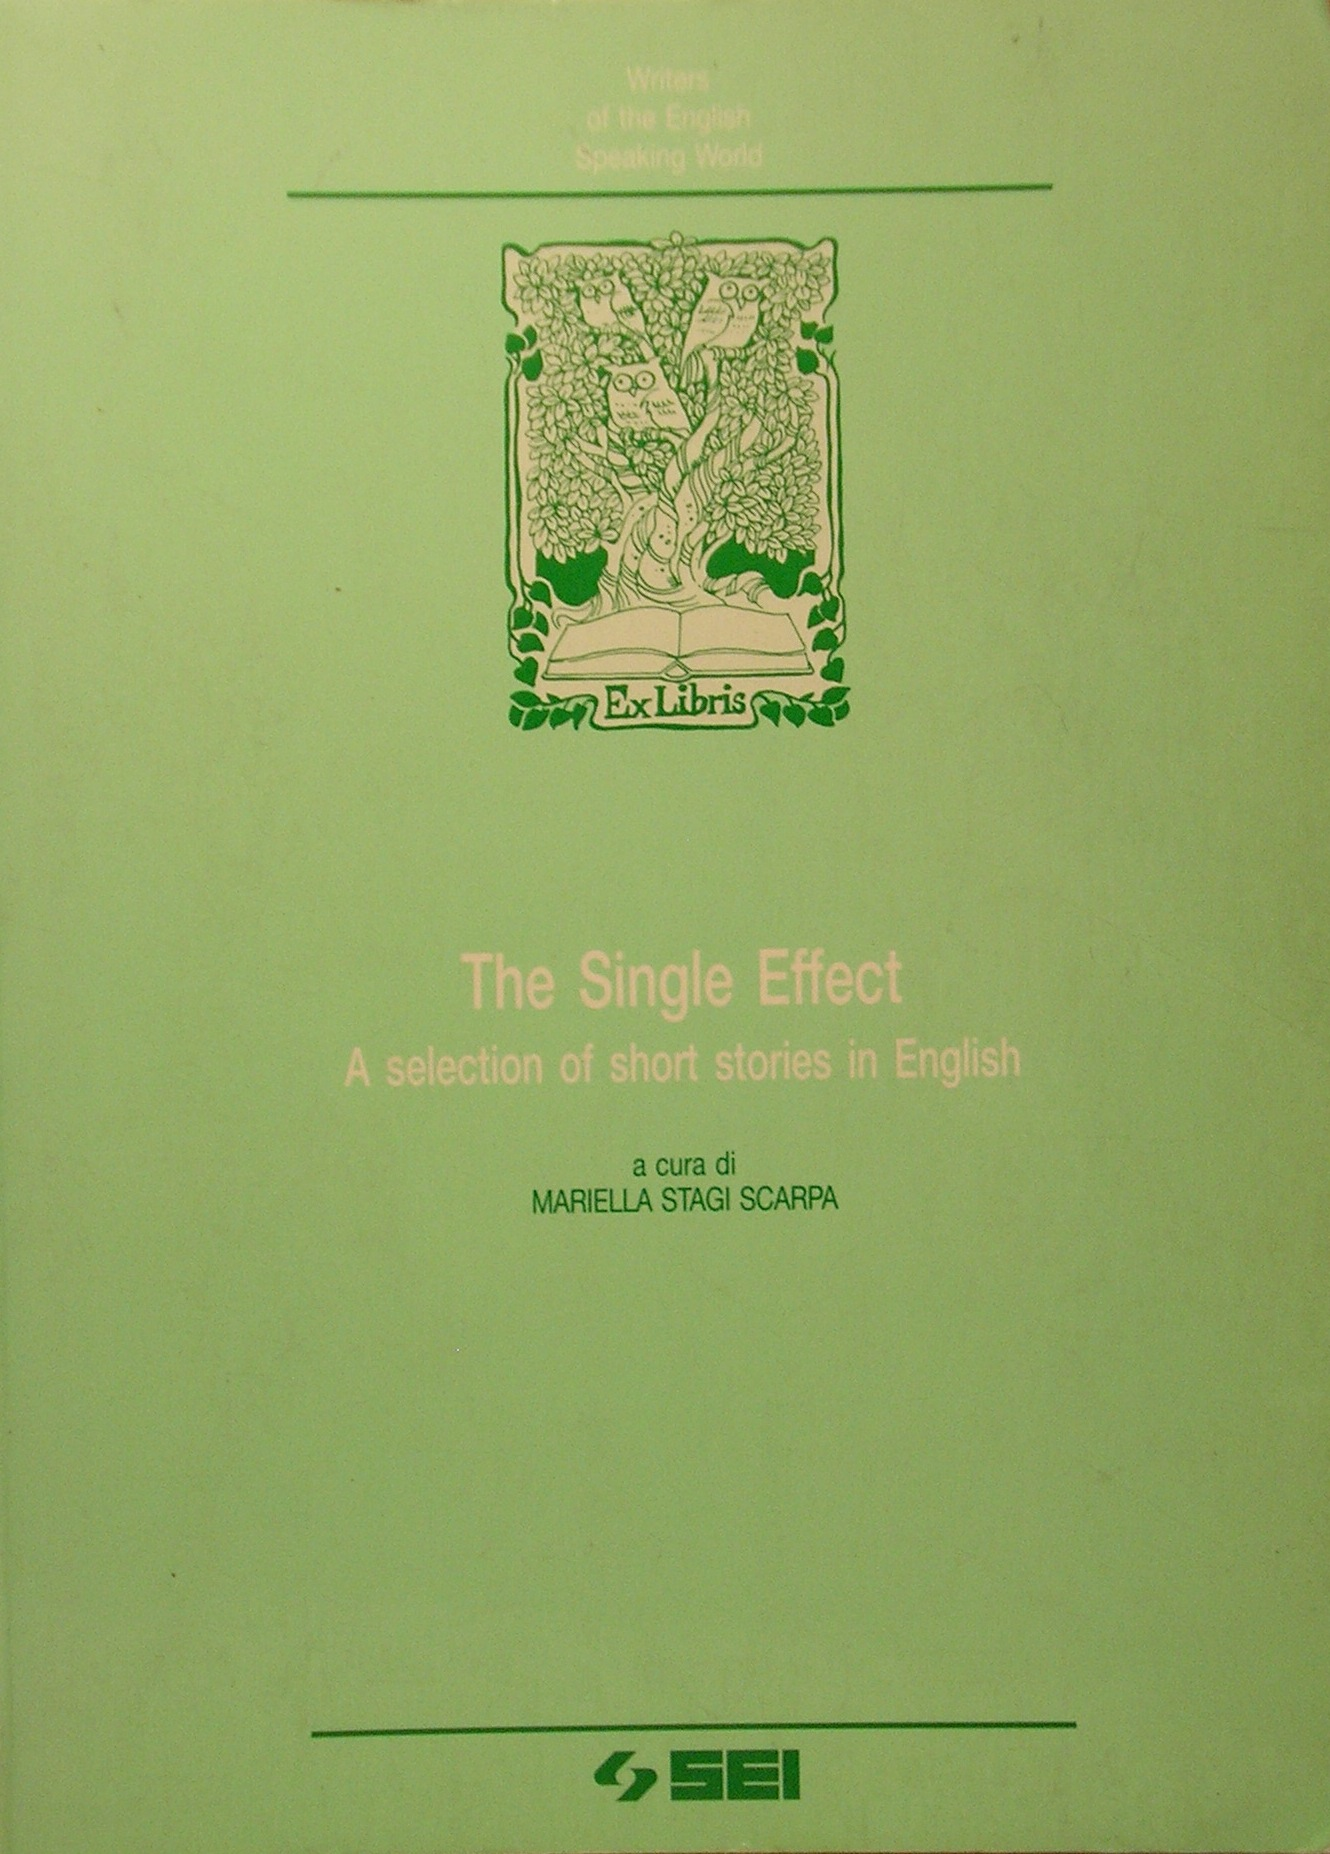 The single effect